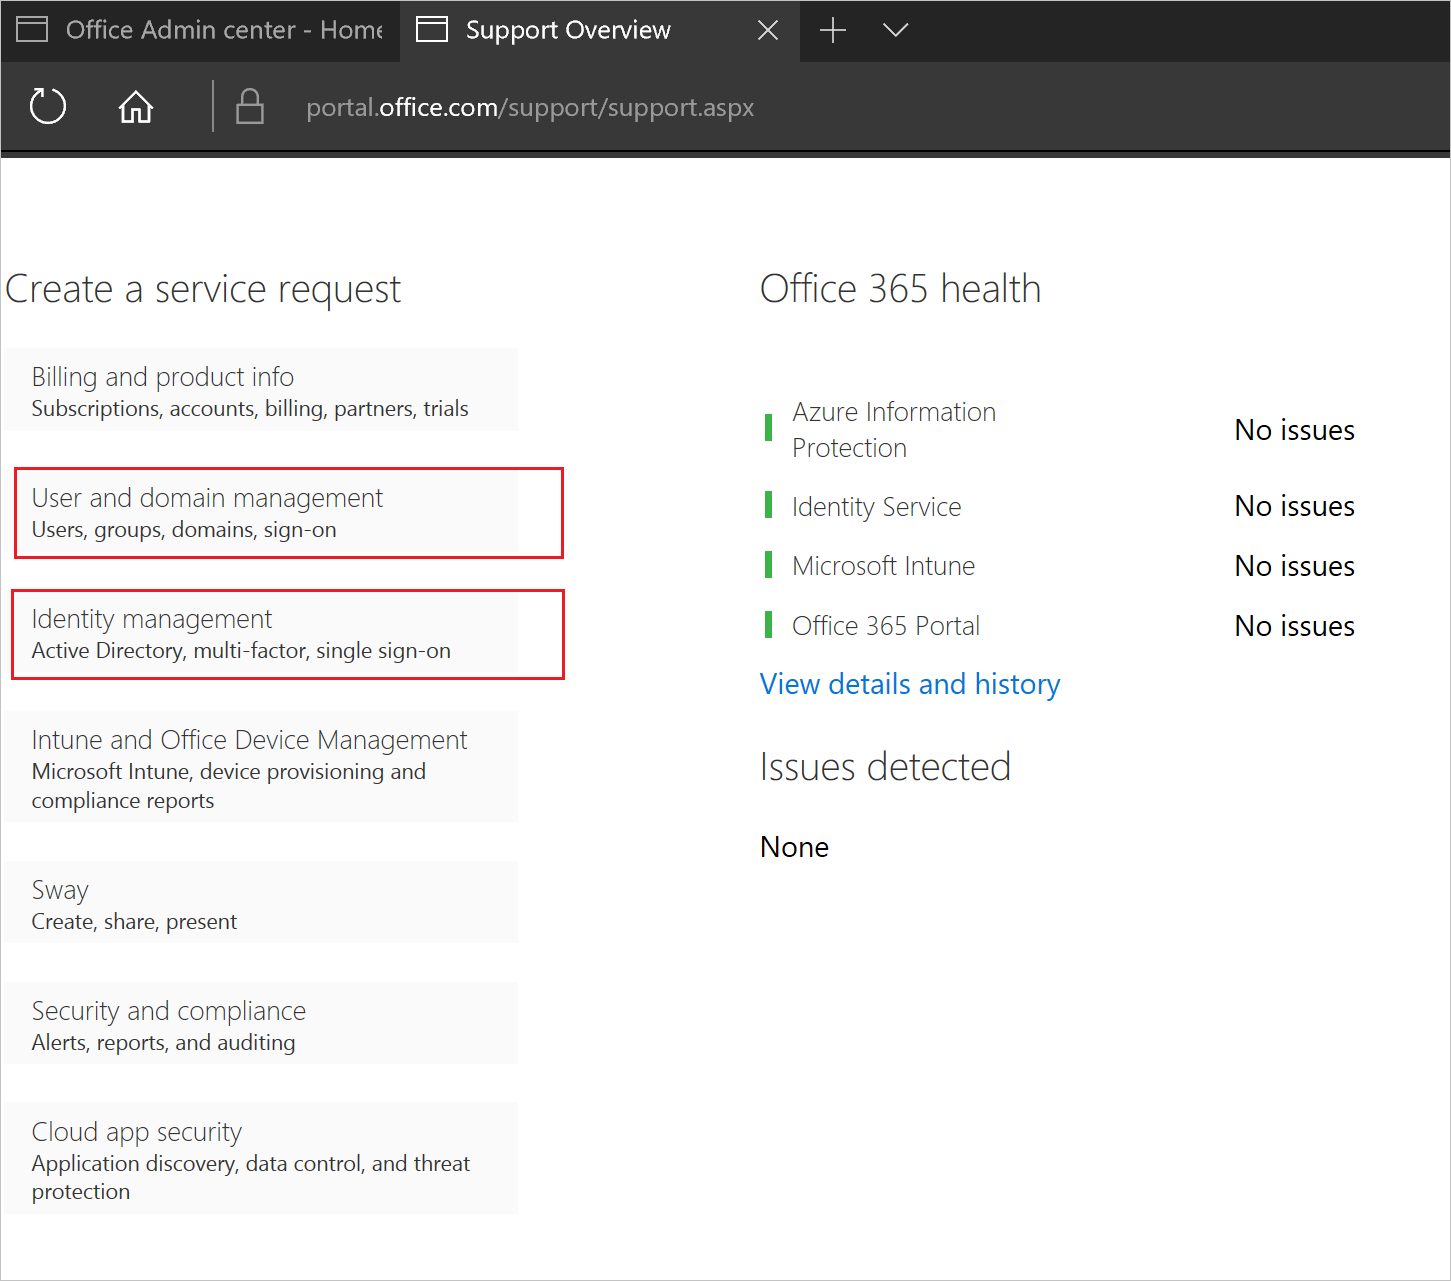 Get support for Azure AD | Microsoft Docs